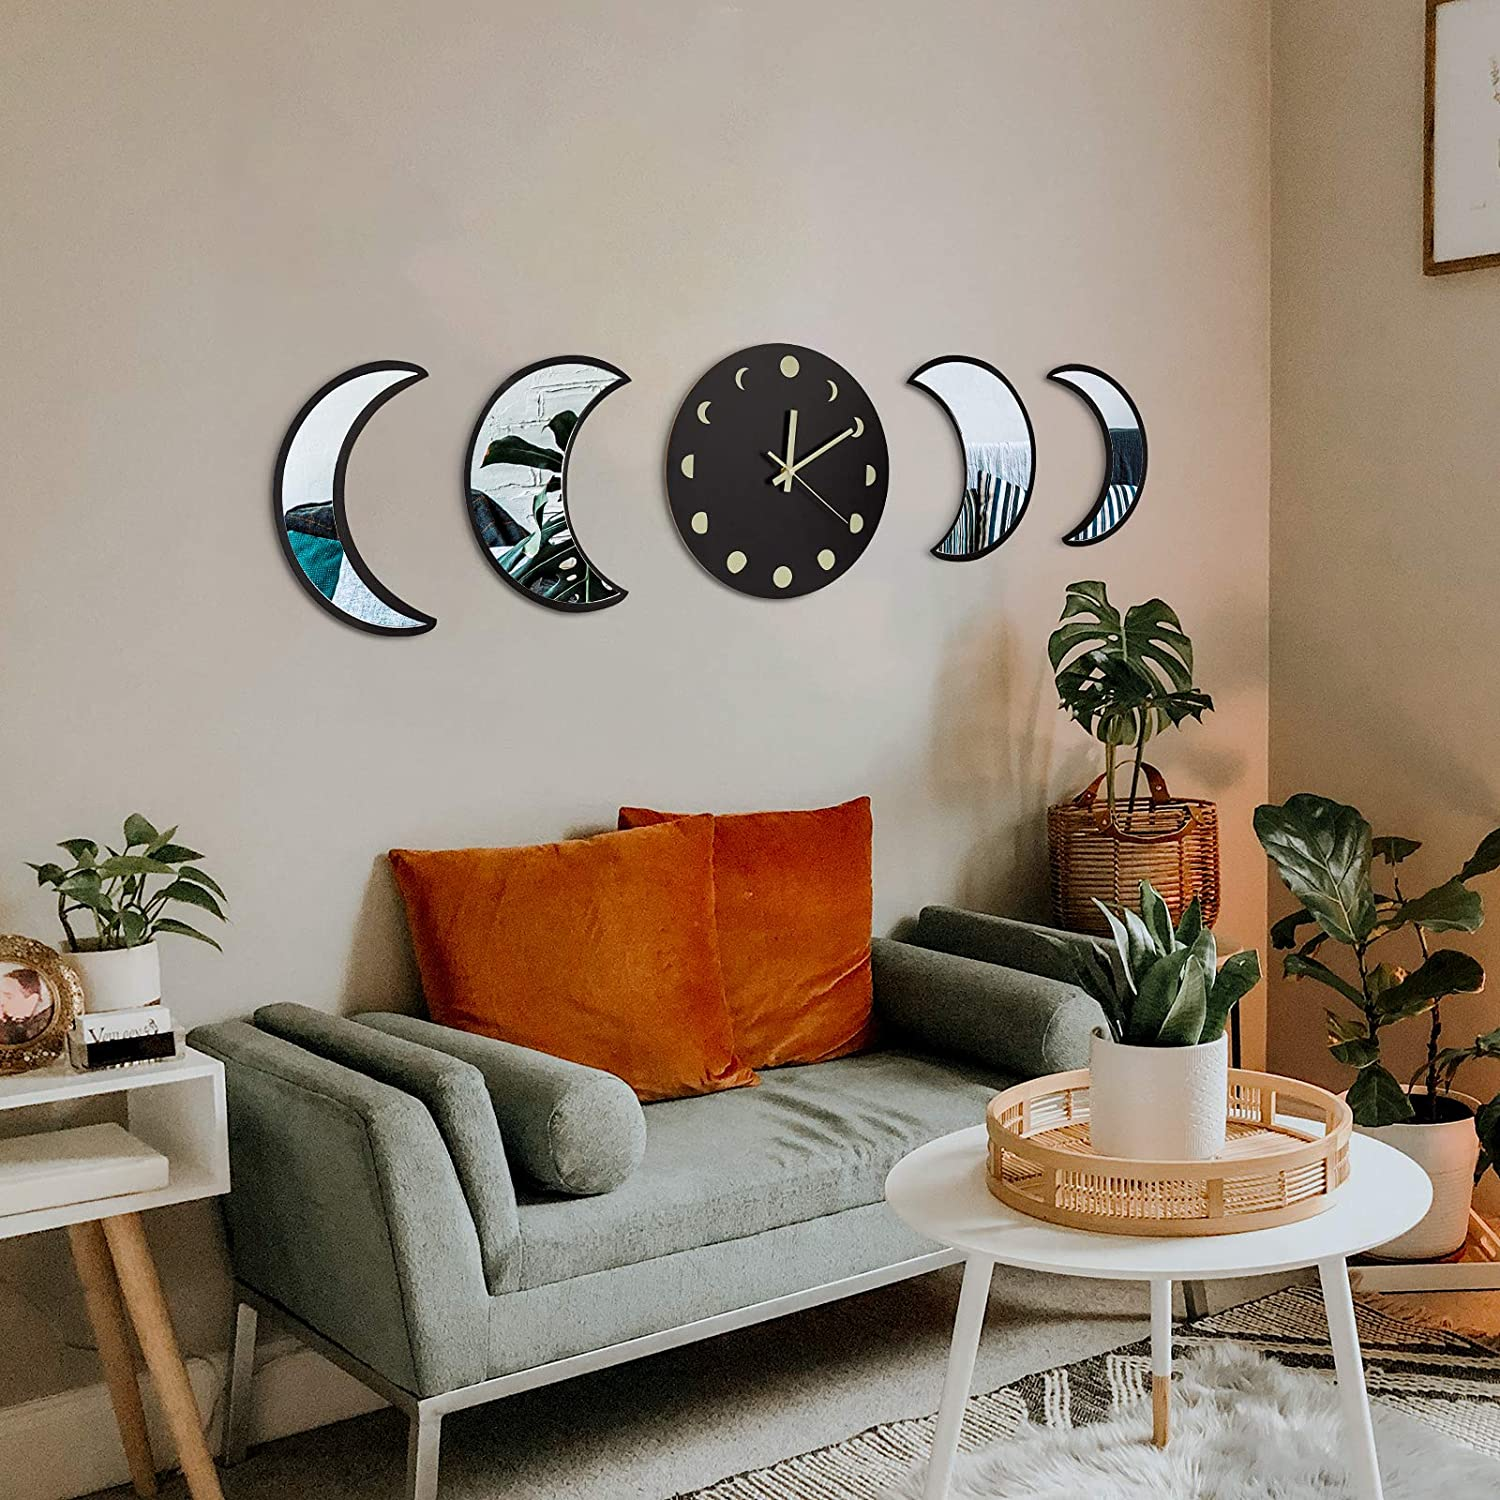 MAXROCK Wall Decor Mirror and Clock Set, Moon Phase Mirror with Luminous Wall Clock, Non-Ticking Super Quiet, Bohemian Moon Wall Decor for Living Room Bedroom Farmhouse Rustic